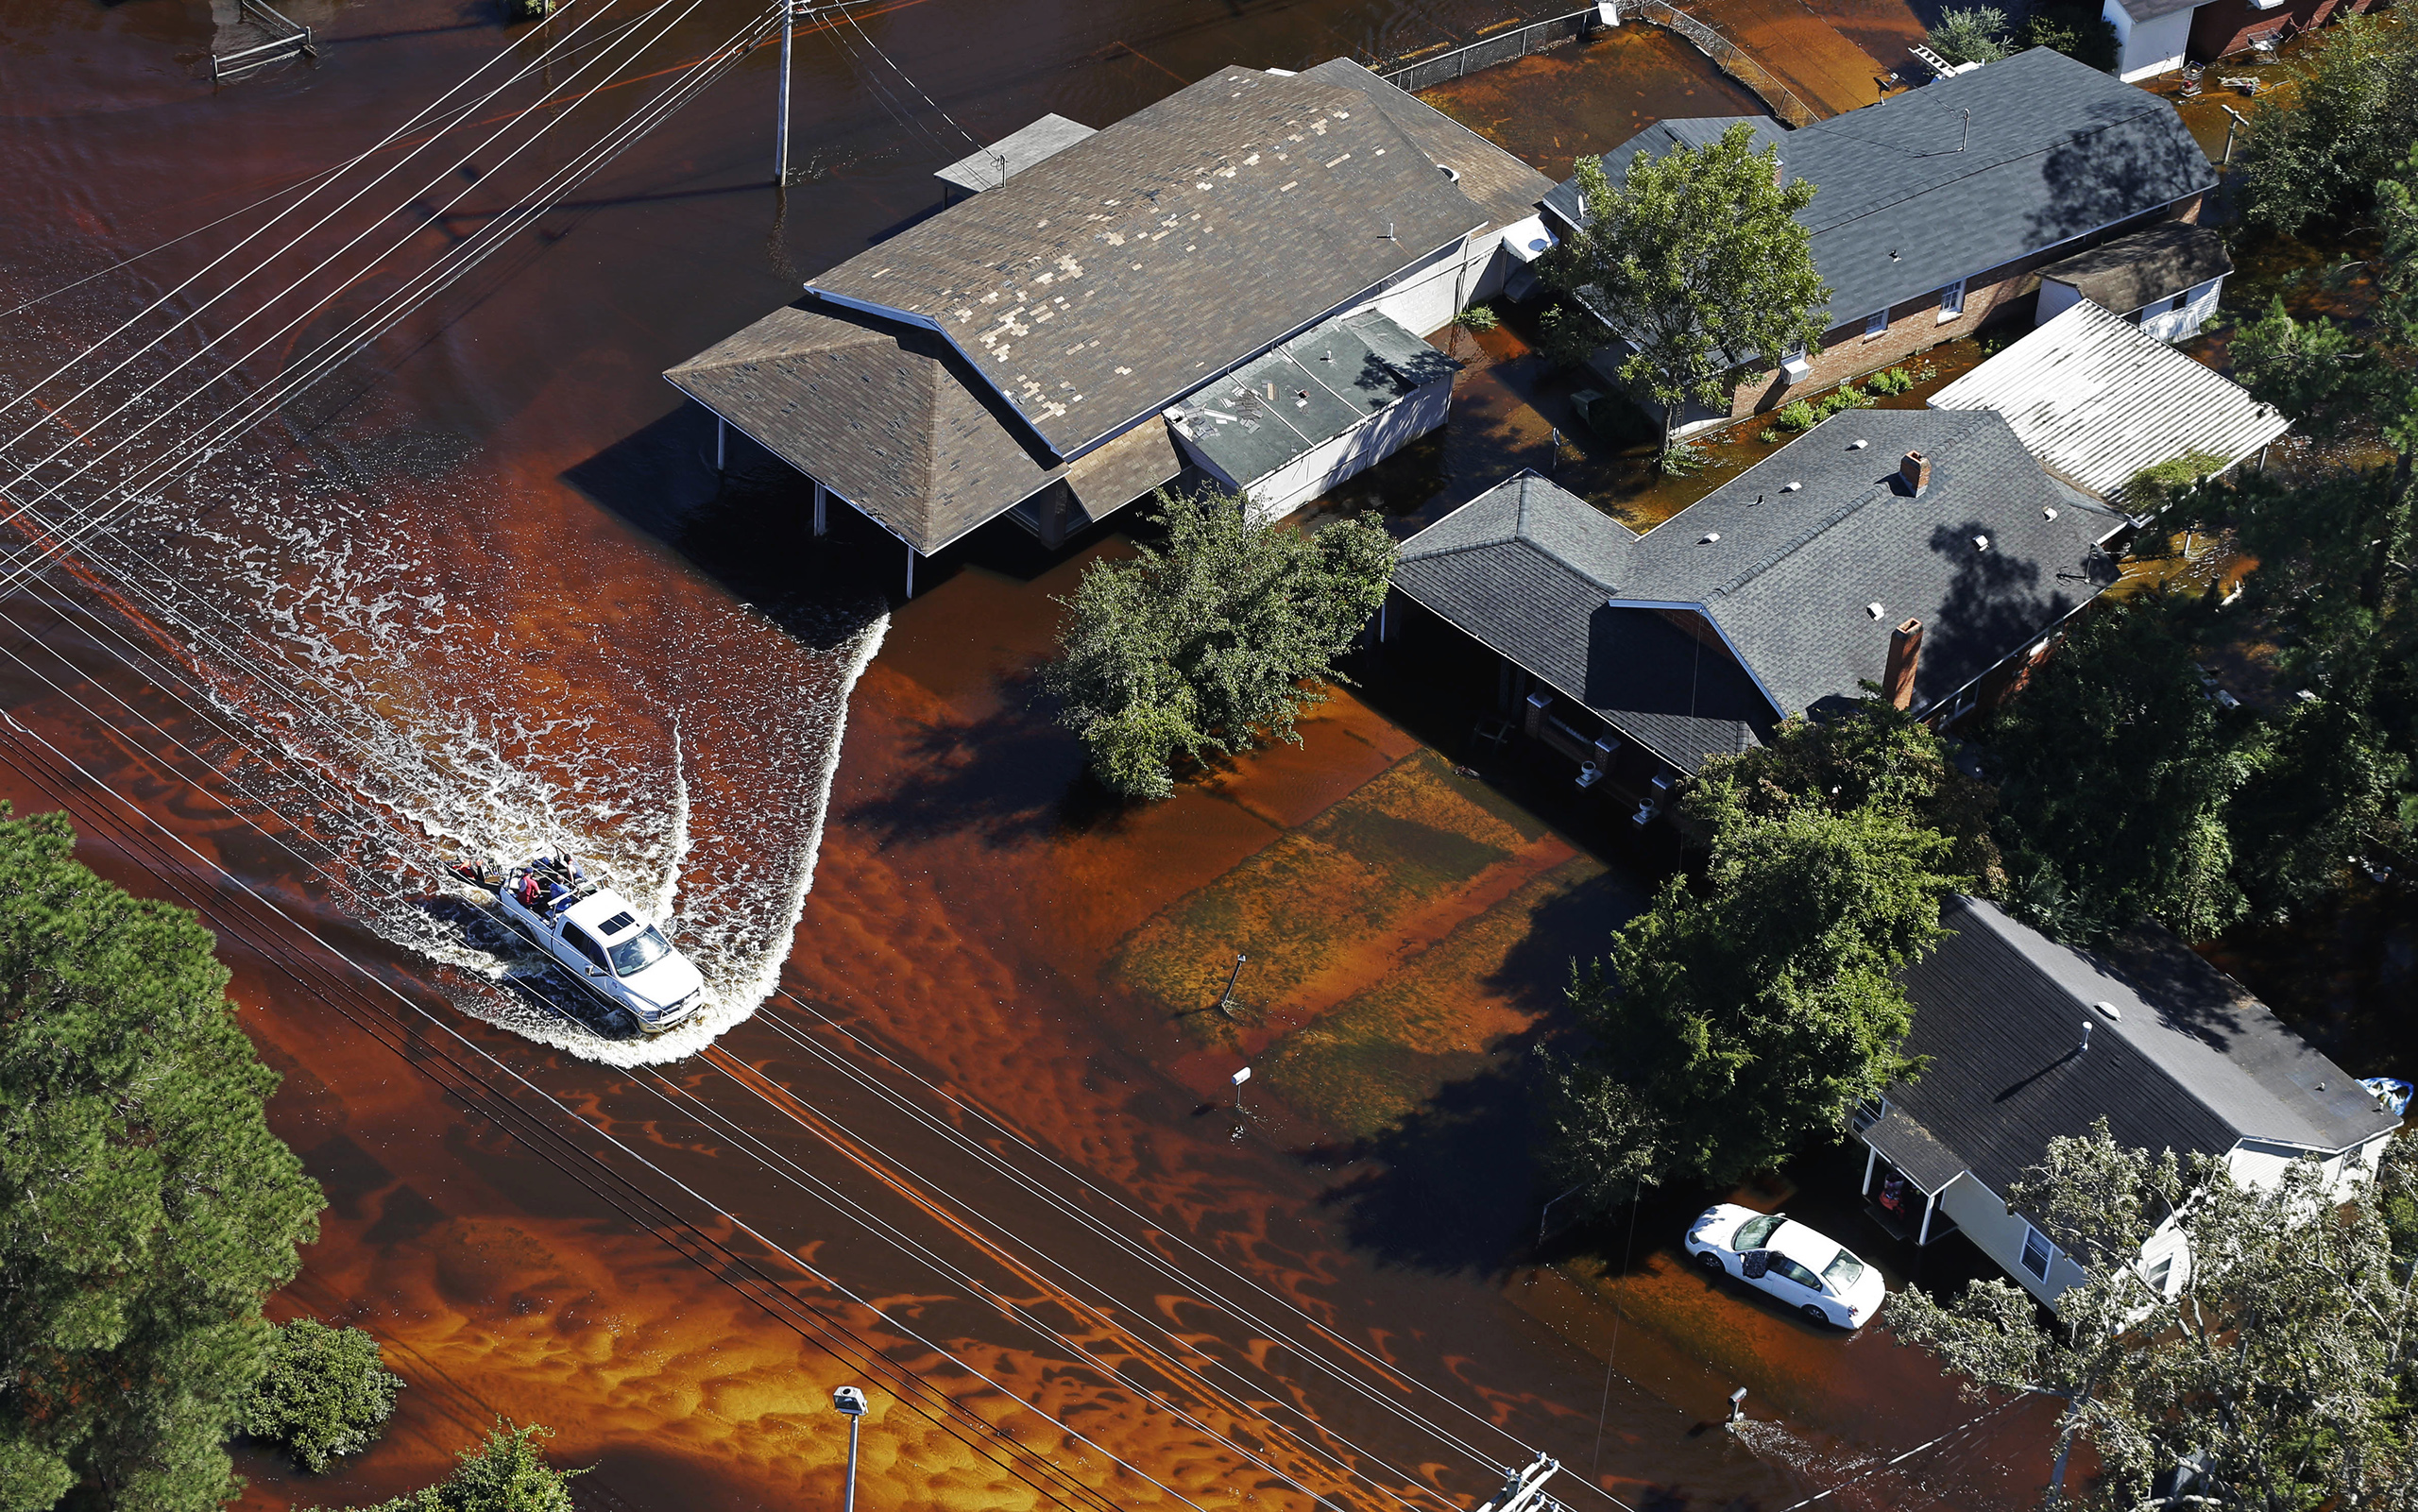 A truck drives through floodwaters from Hurricane Matthew in Lumberton, N.C., on Oct. 12, 2016.